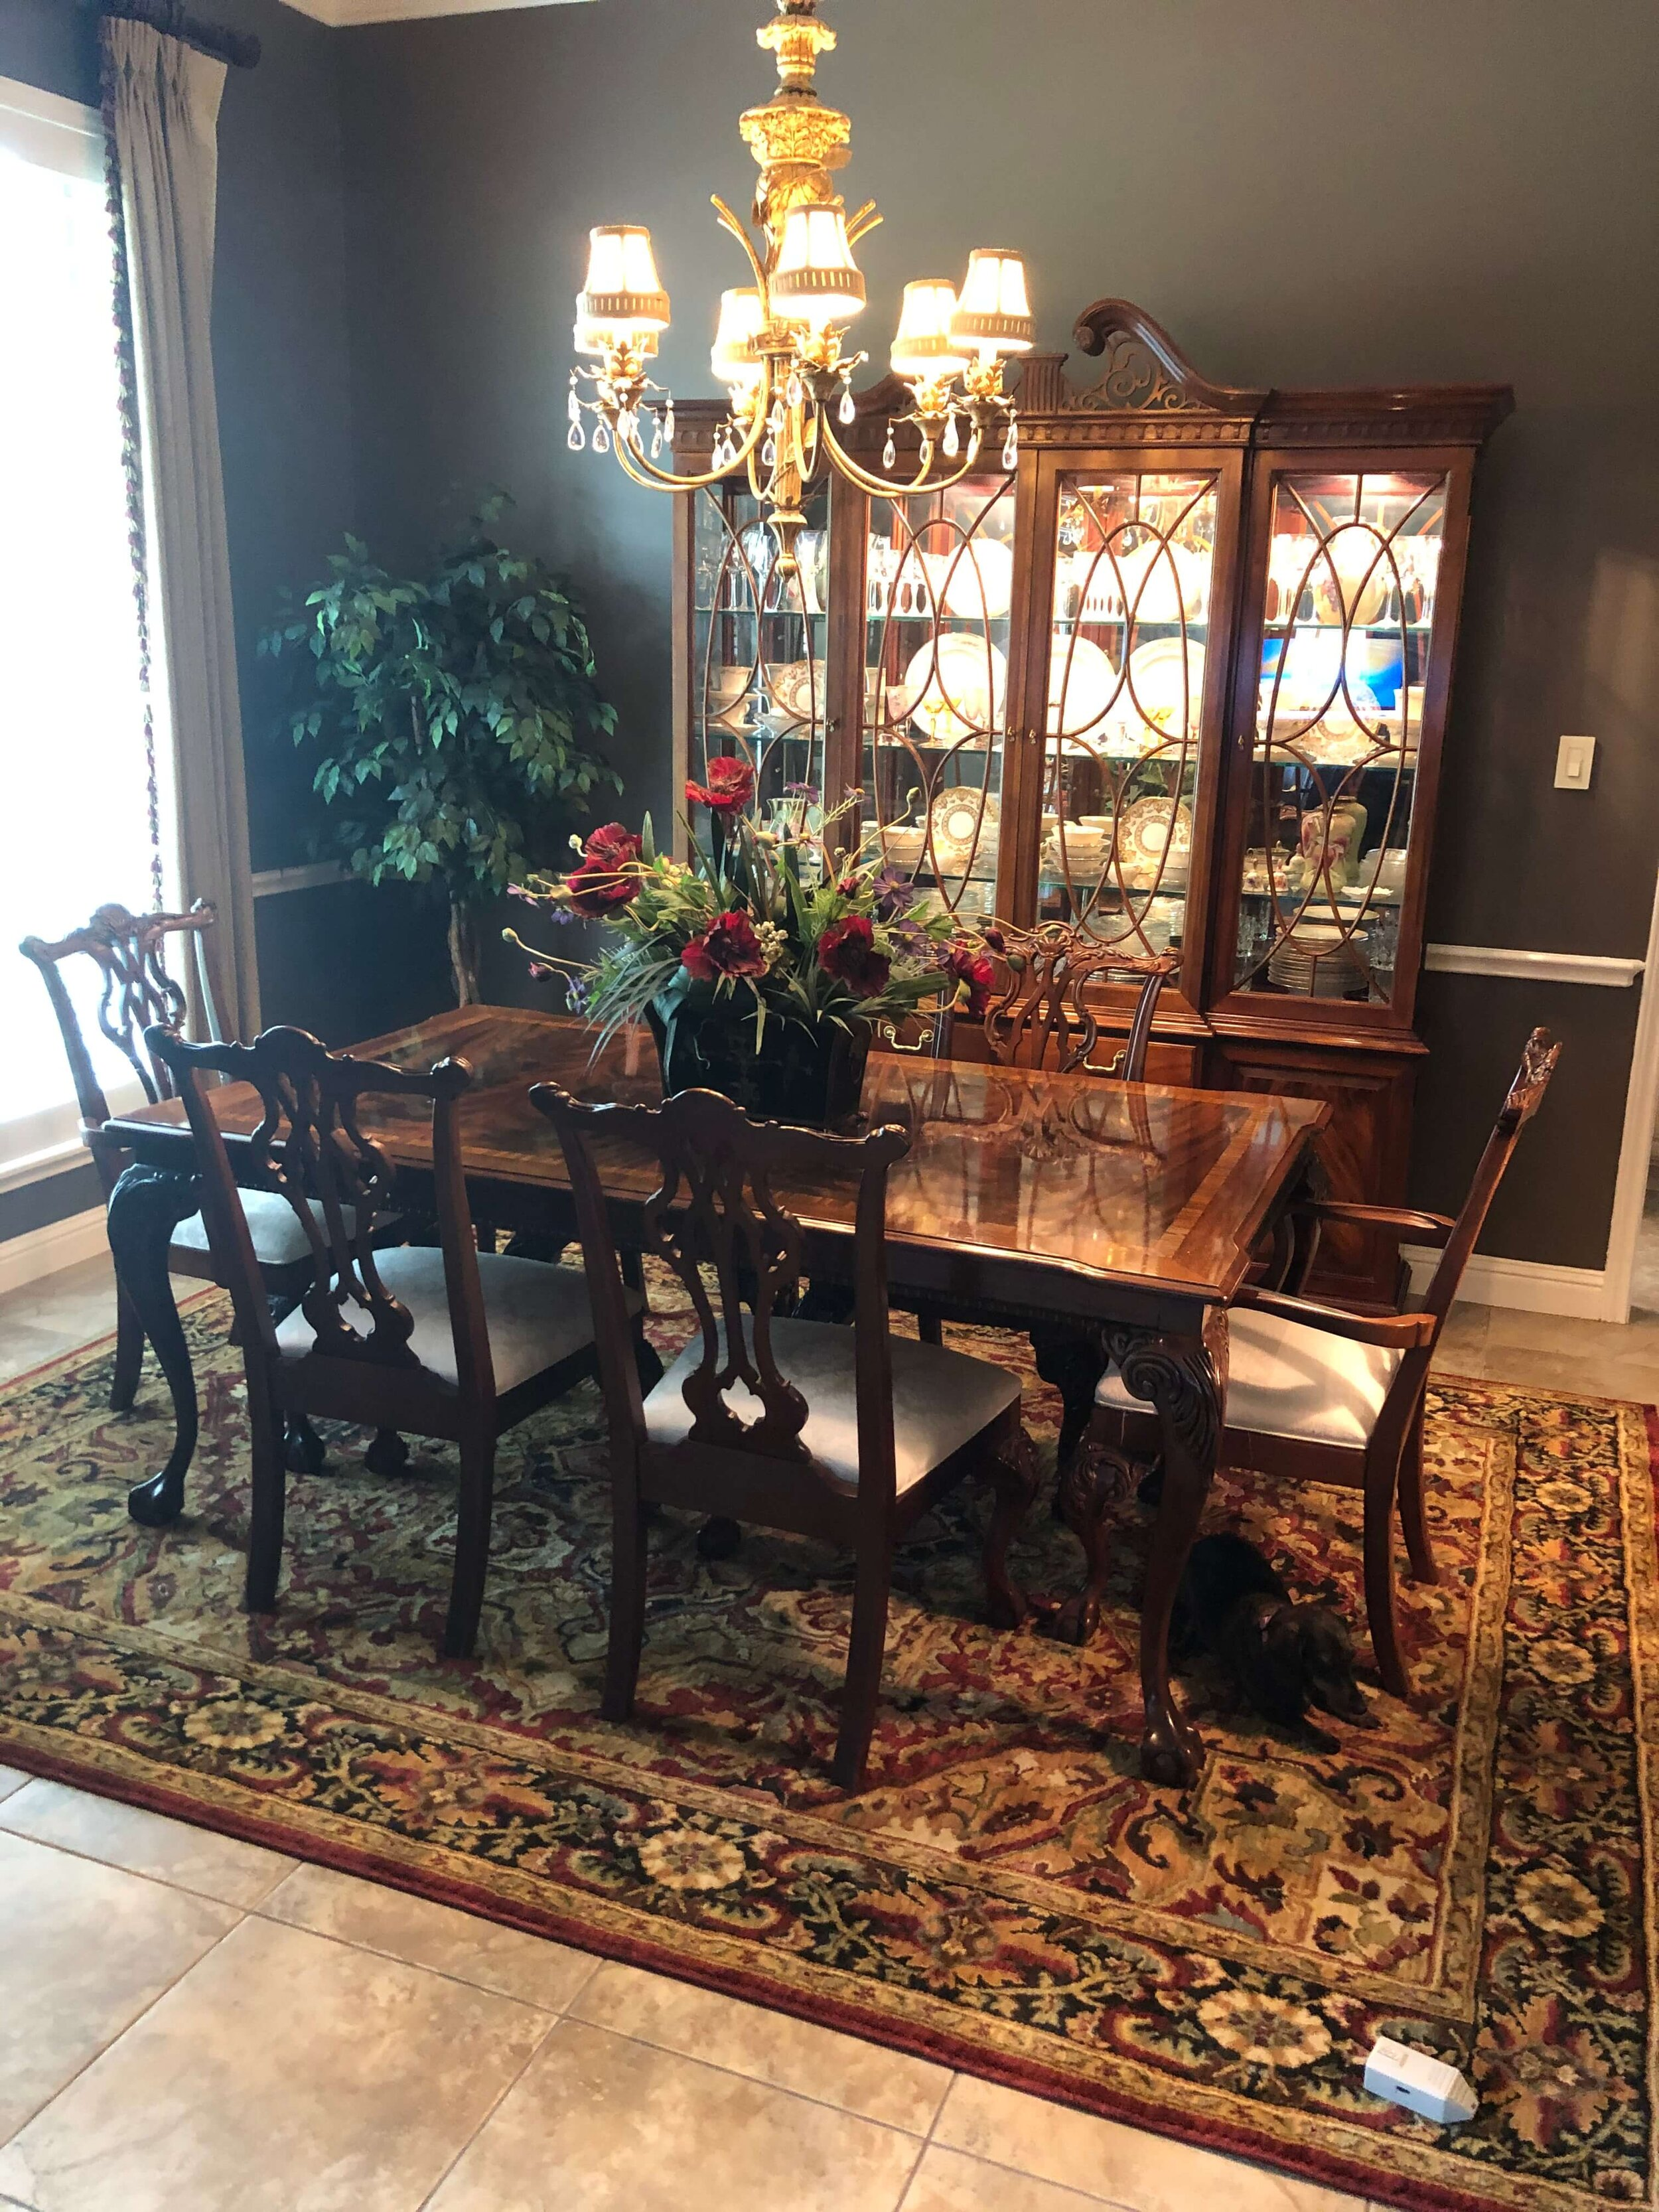 How To Update Your Dining Room Decor Without Redoing It All 2 Examples Designed